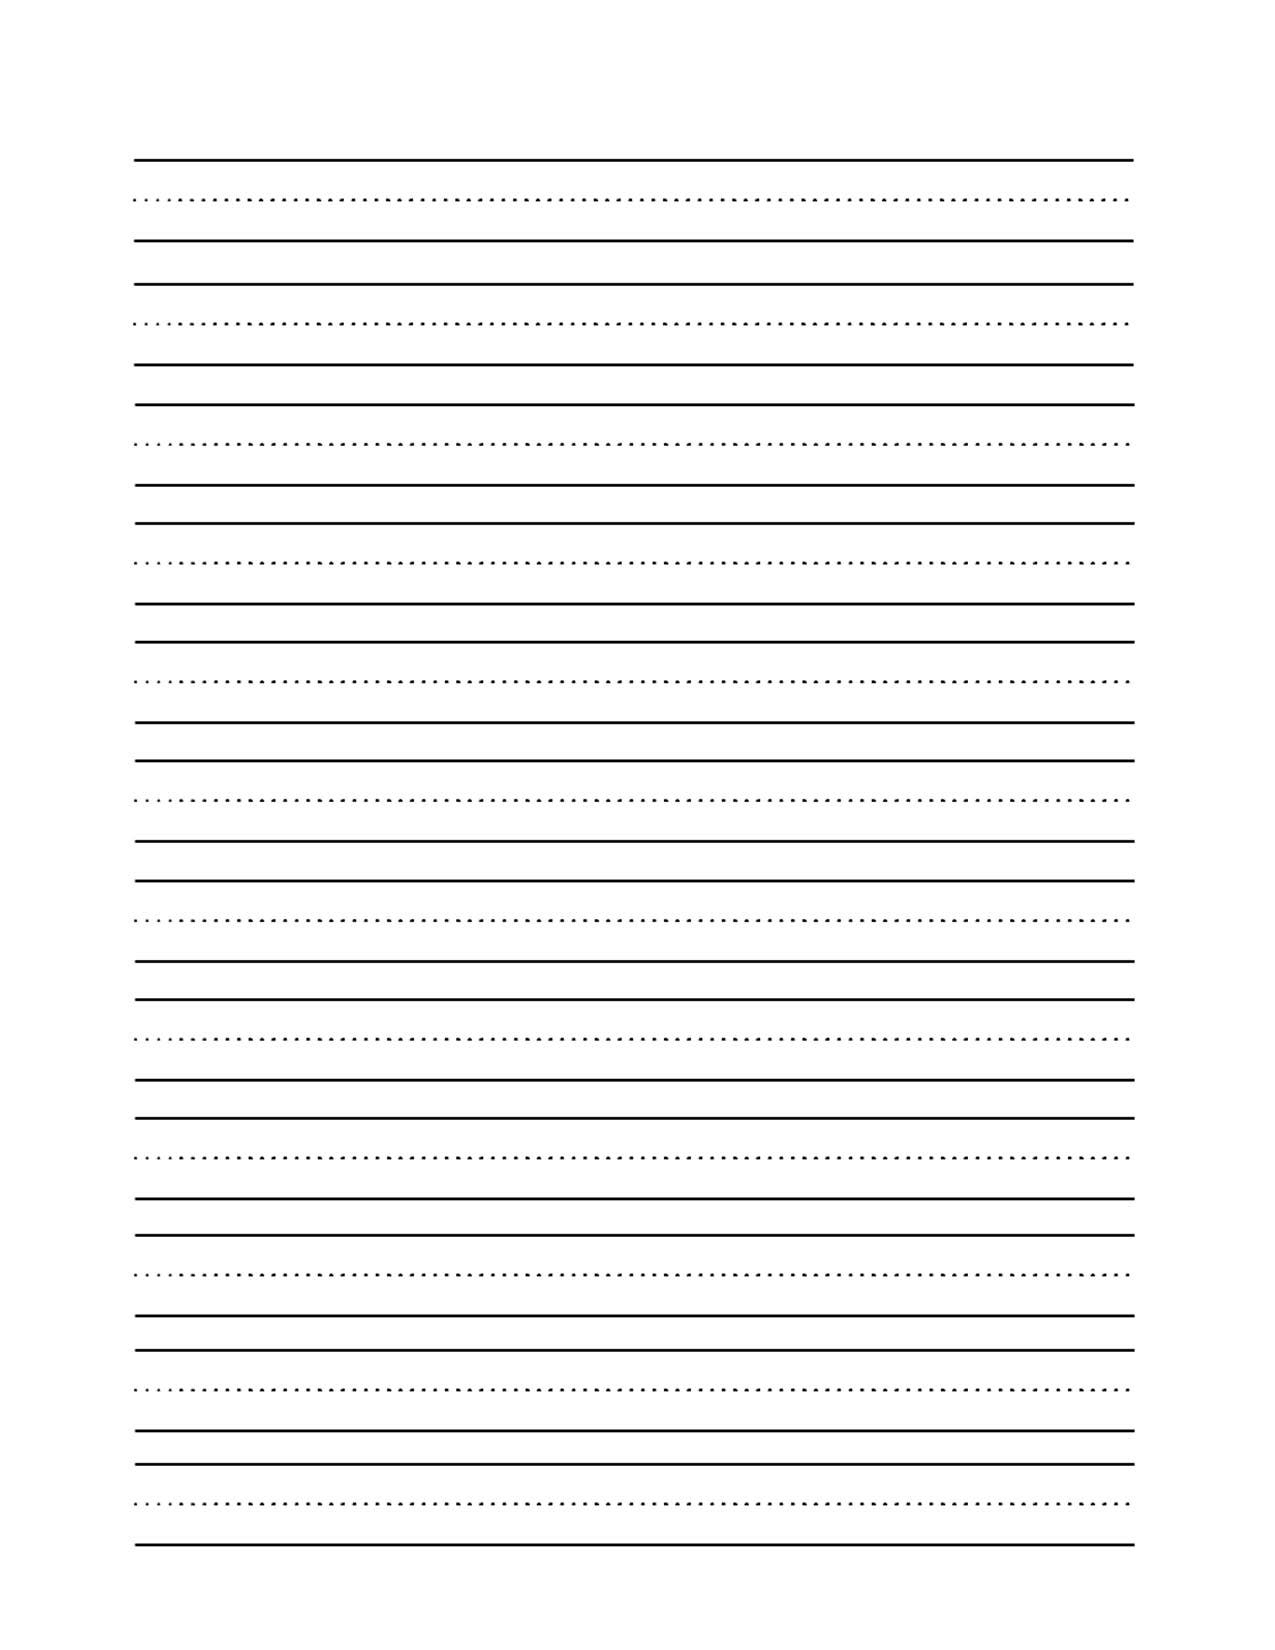 Blank Writing Sheets - Karis.sticken.co | Printable Blank Handwriting Worksheets